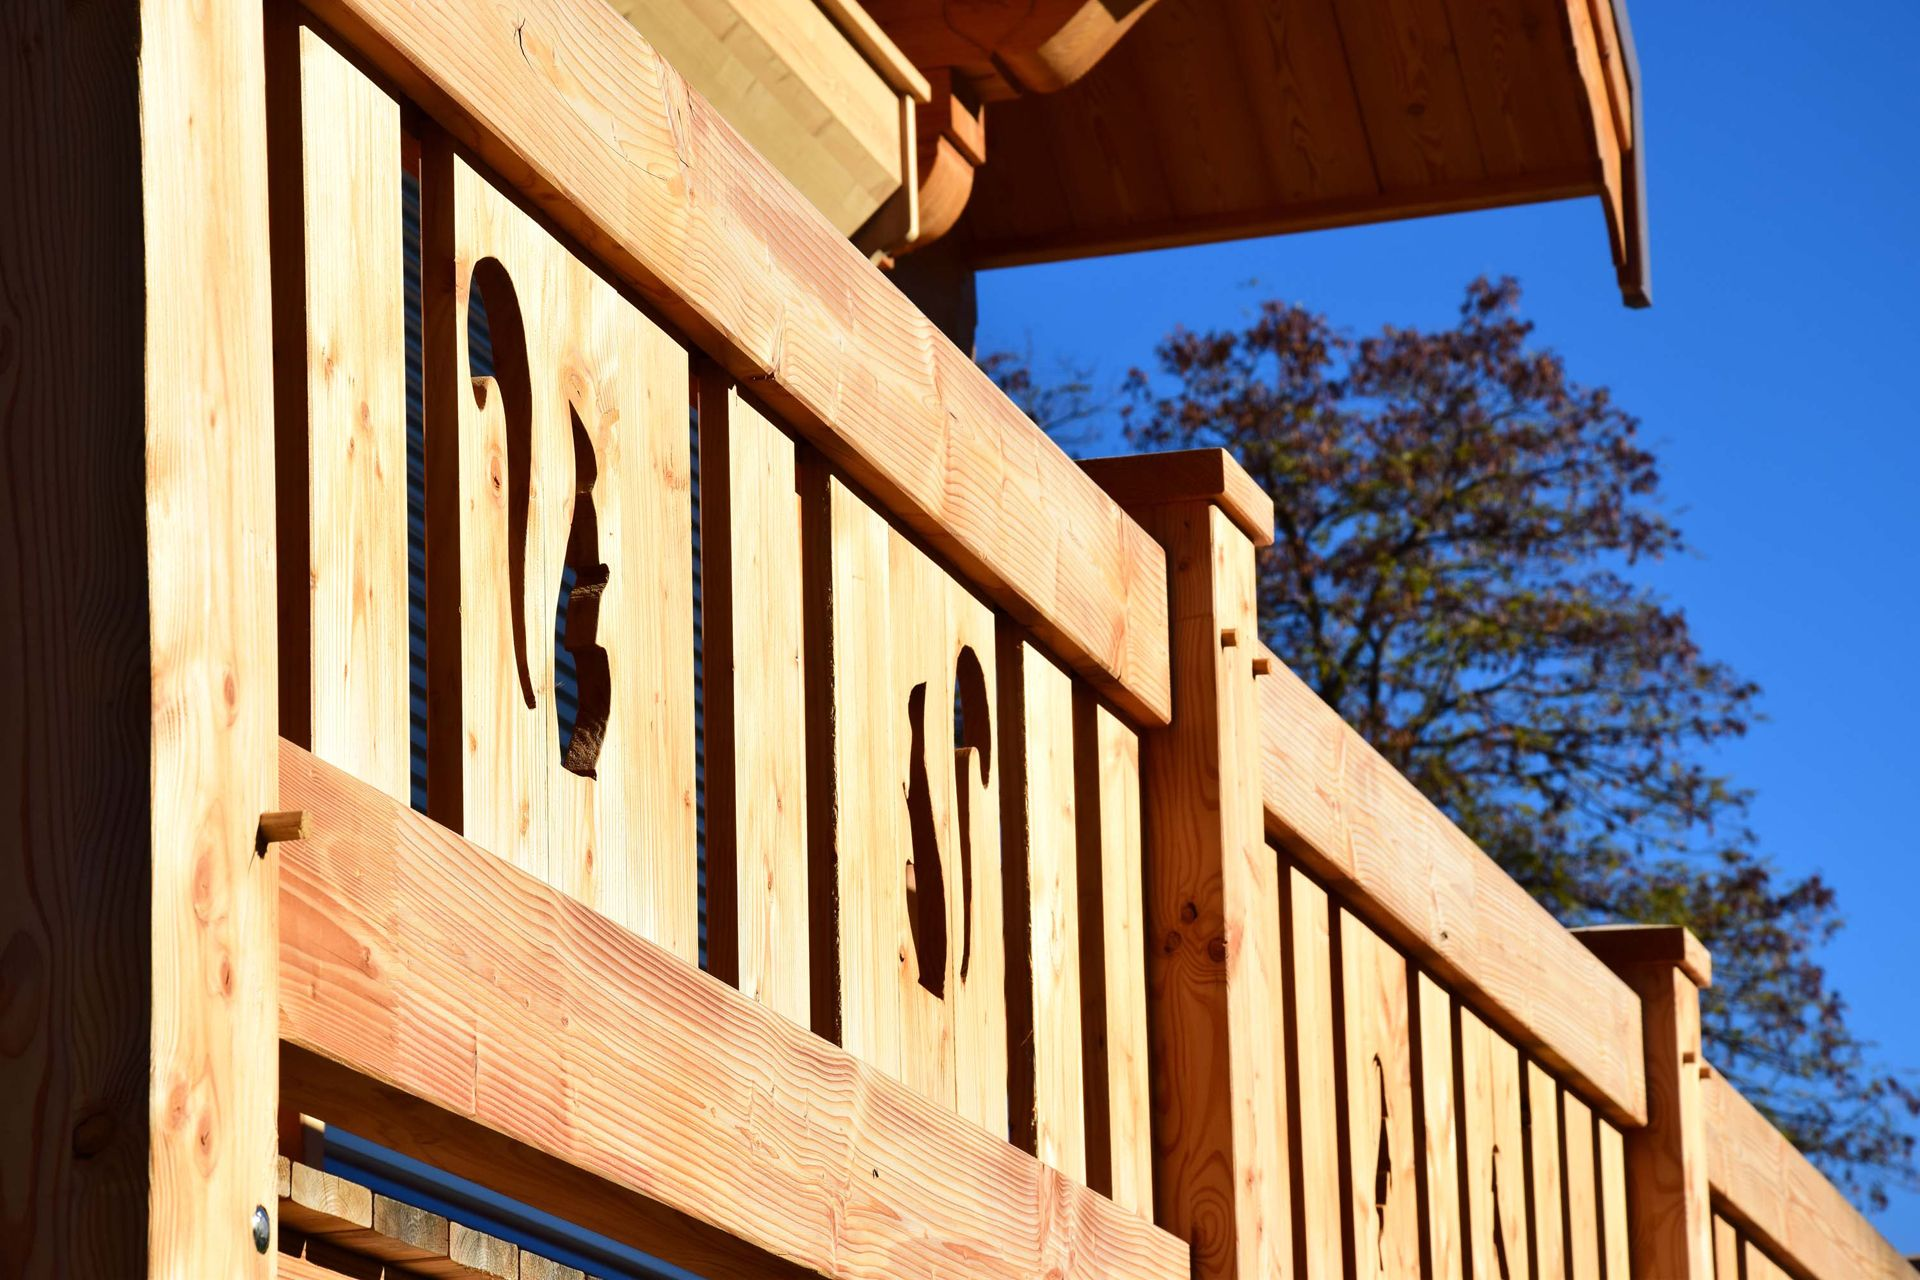 Lombard Vasina chalet in wood. Construction in Douglas fir